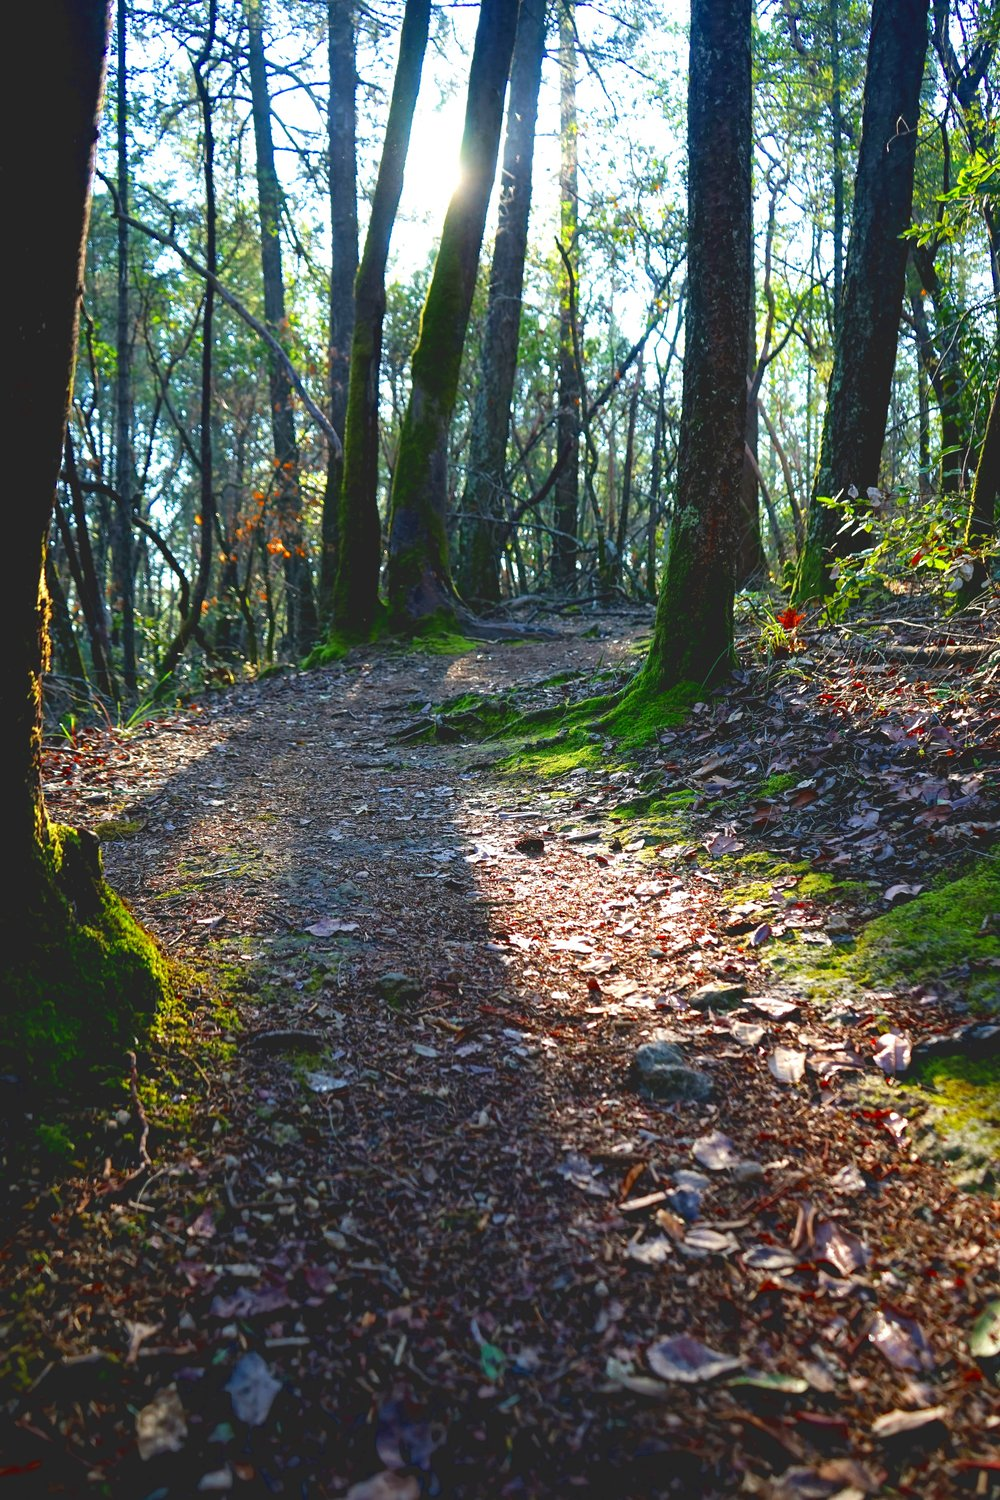 """The 1 mile 'Hike In' Option AKA """"History Hike"""" from Bothe Park Is a great way to get thirsty as well as clearing your mind! We like to call it the  """"Firkin Hike Option"""" !"""